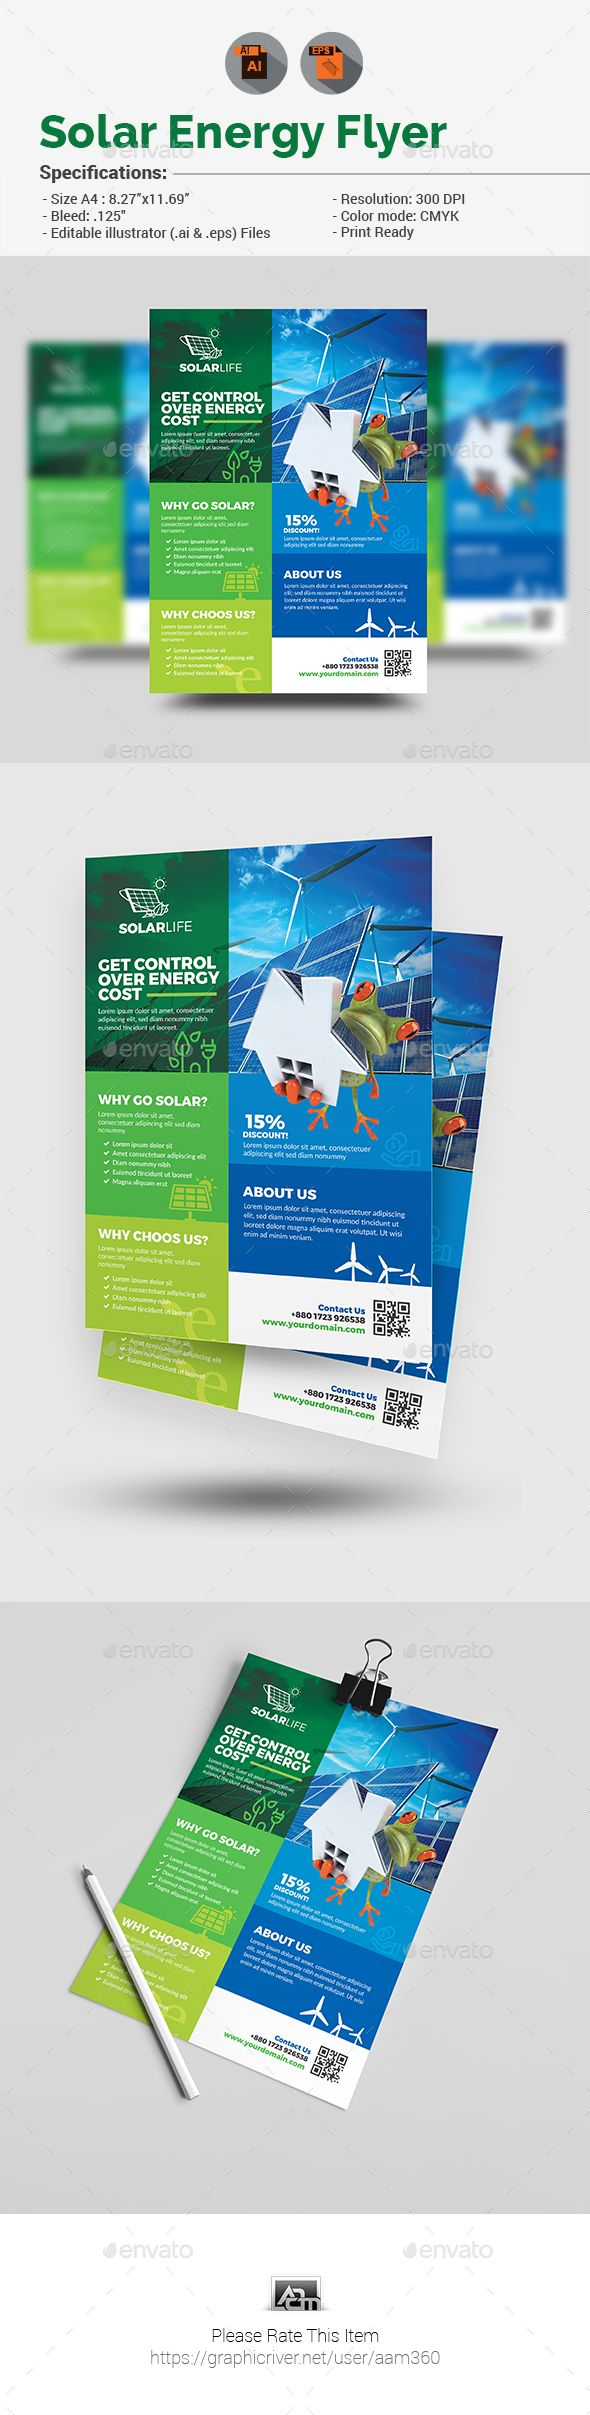 Solar Energy Flyer Template Vector EPS, AI Illustrator